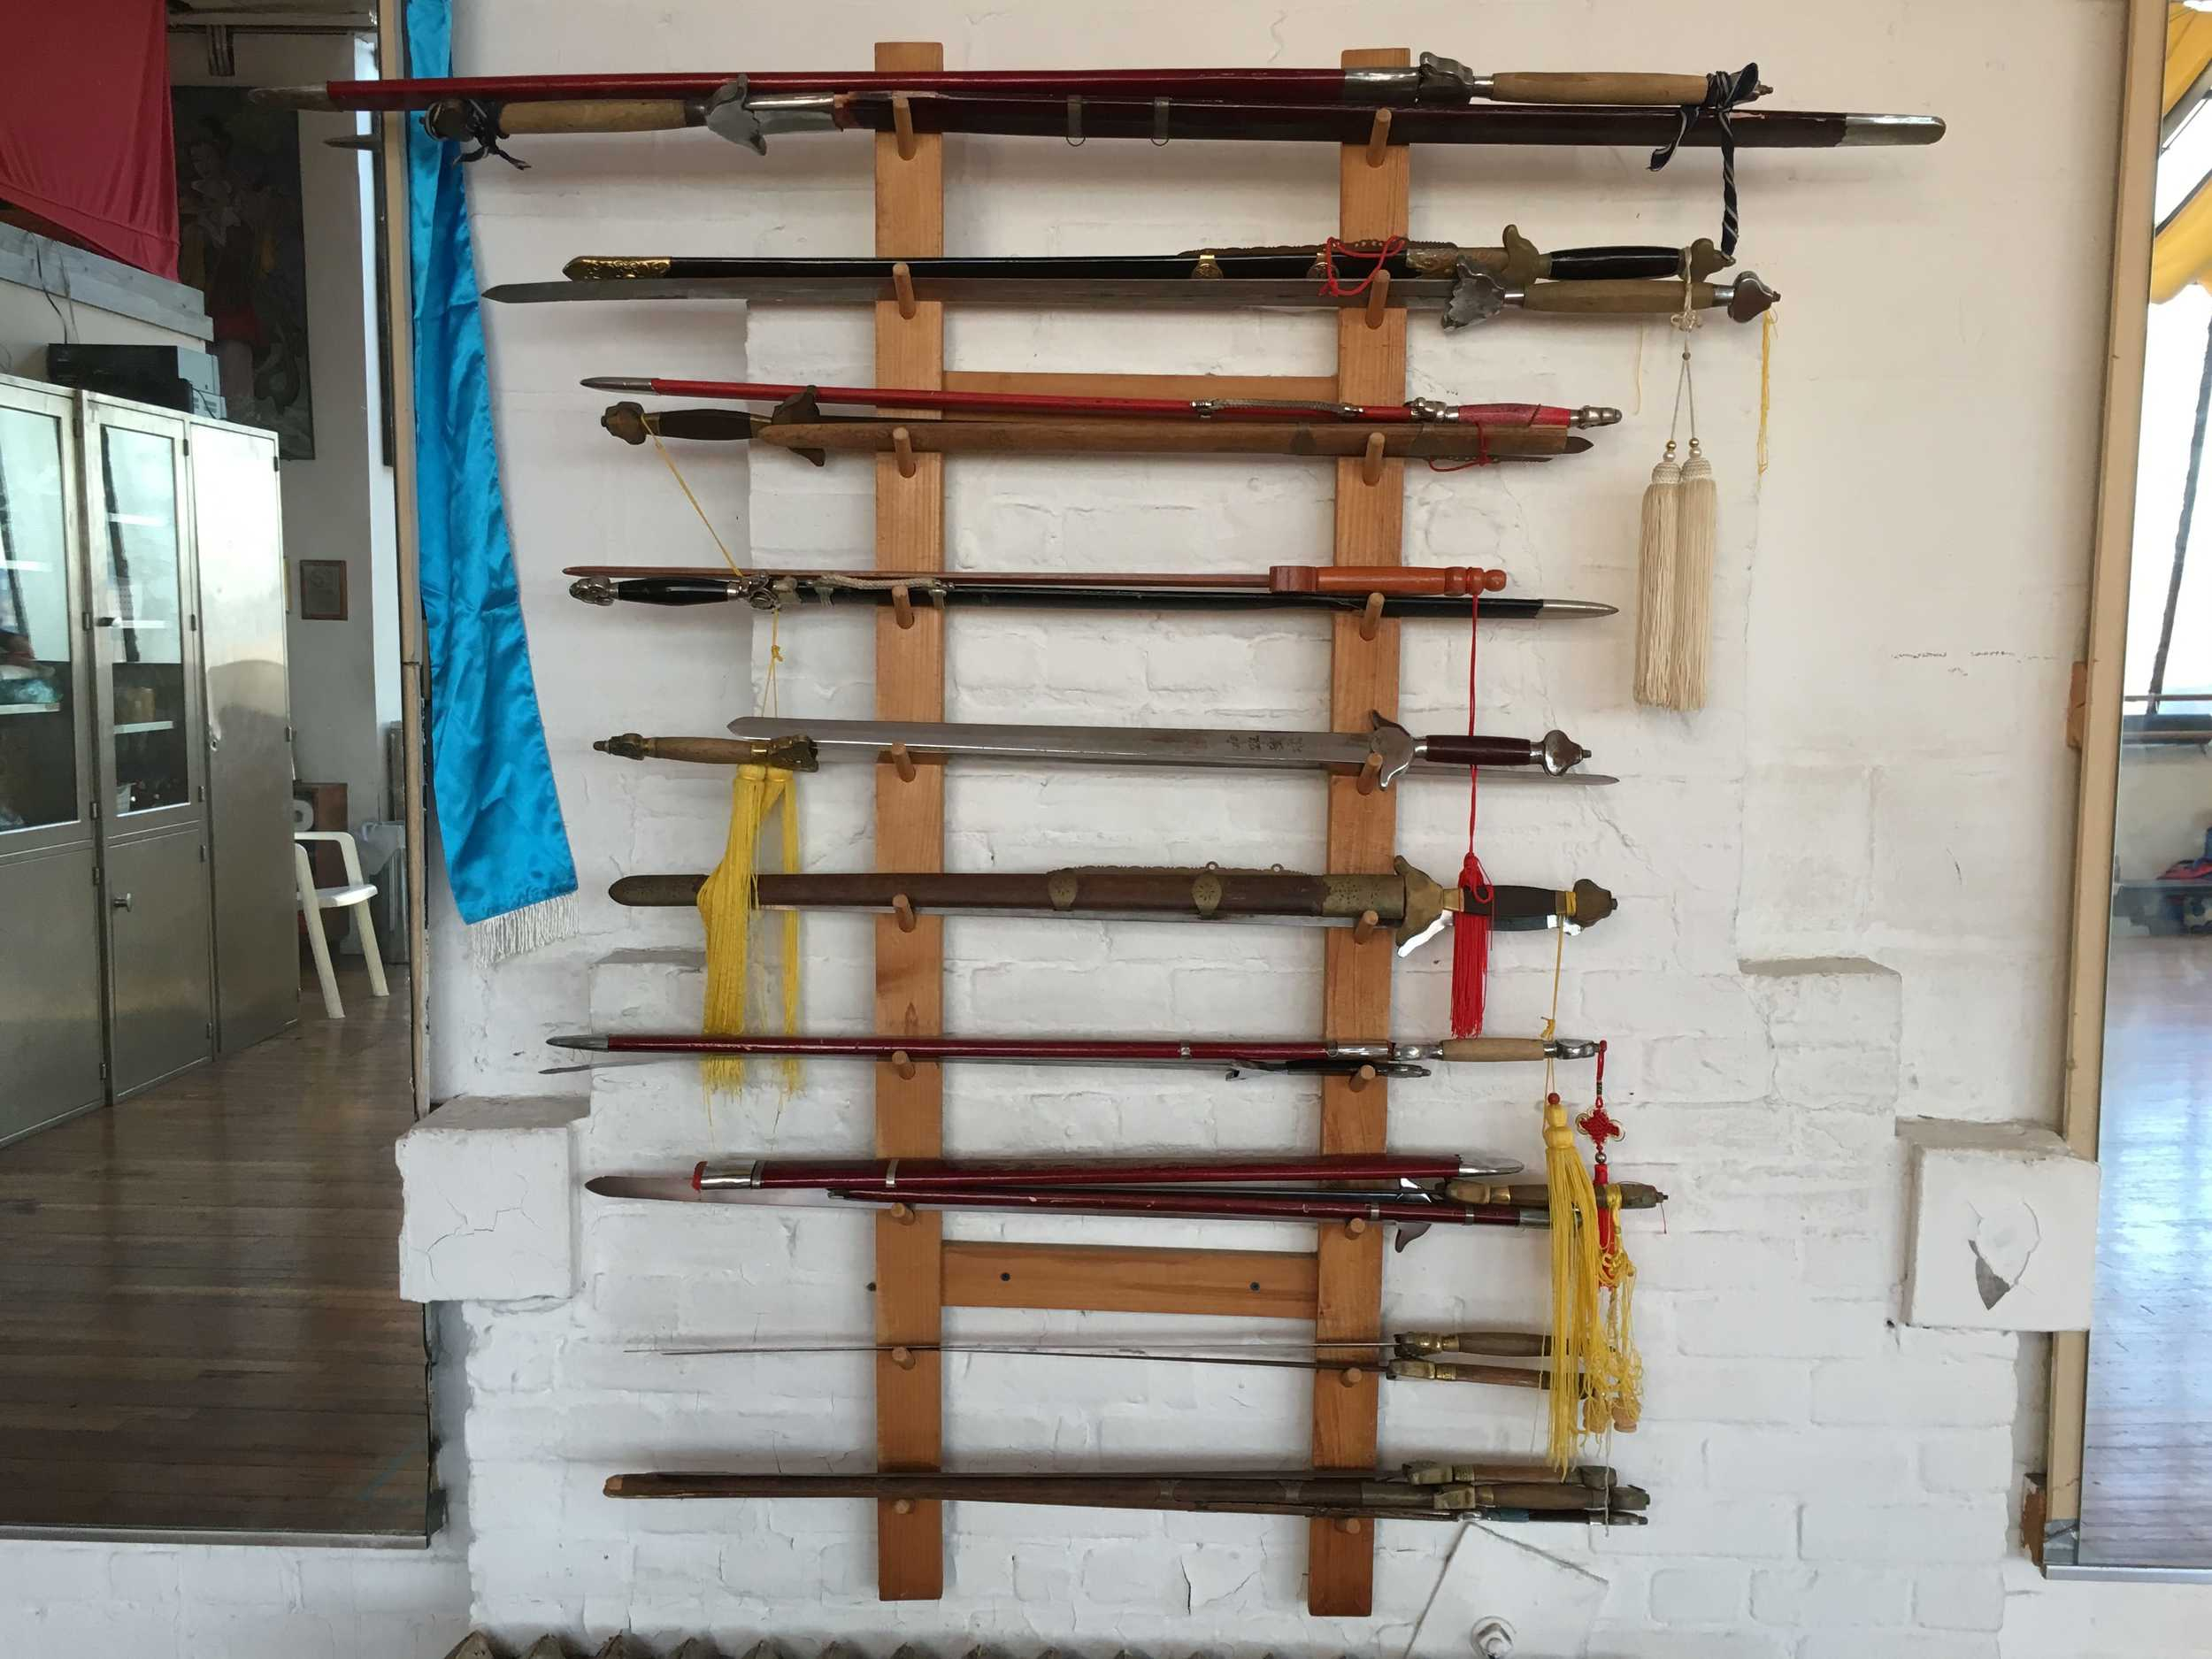 swords-in-boston-kung-fu-tai-chi-studio.JPG